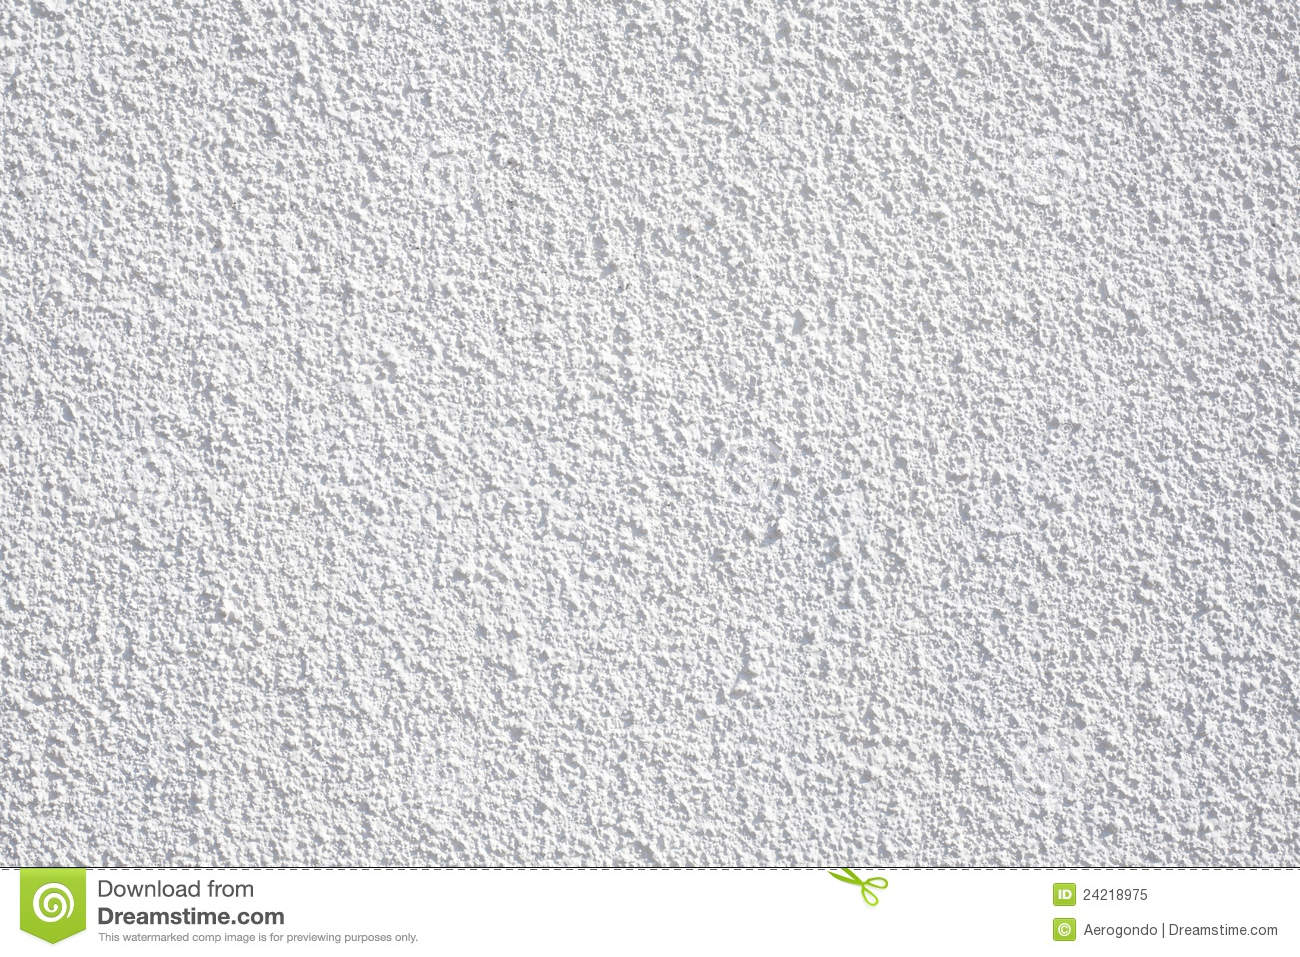 Textura gris de la pared foto de archivo libre de regal as for Gris verdoso pared